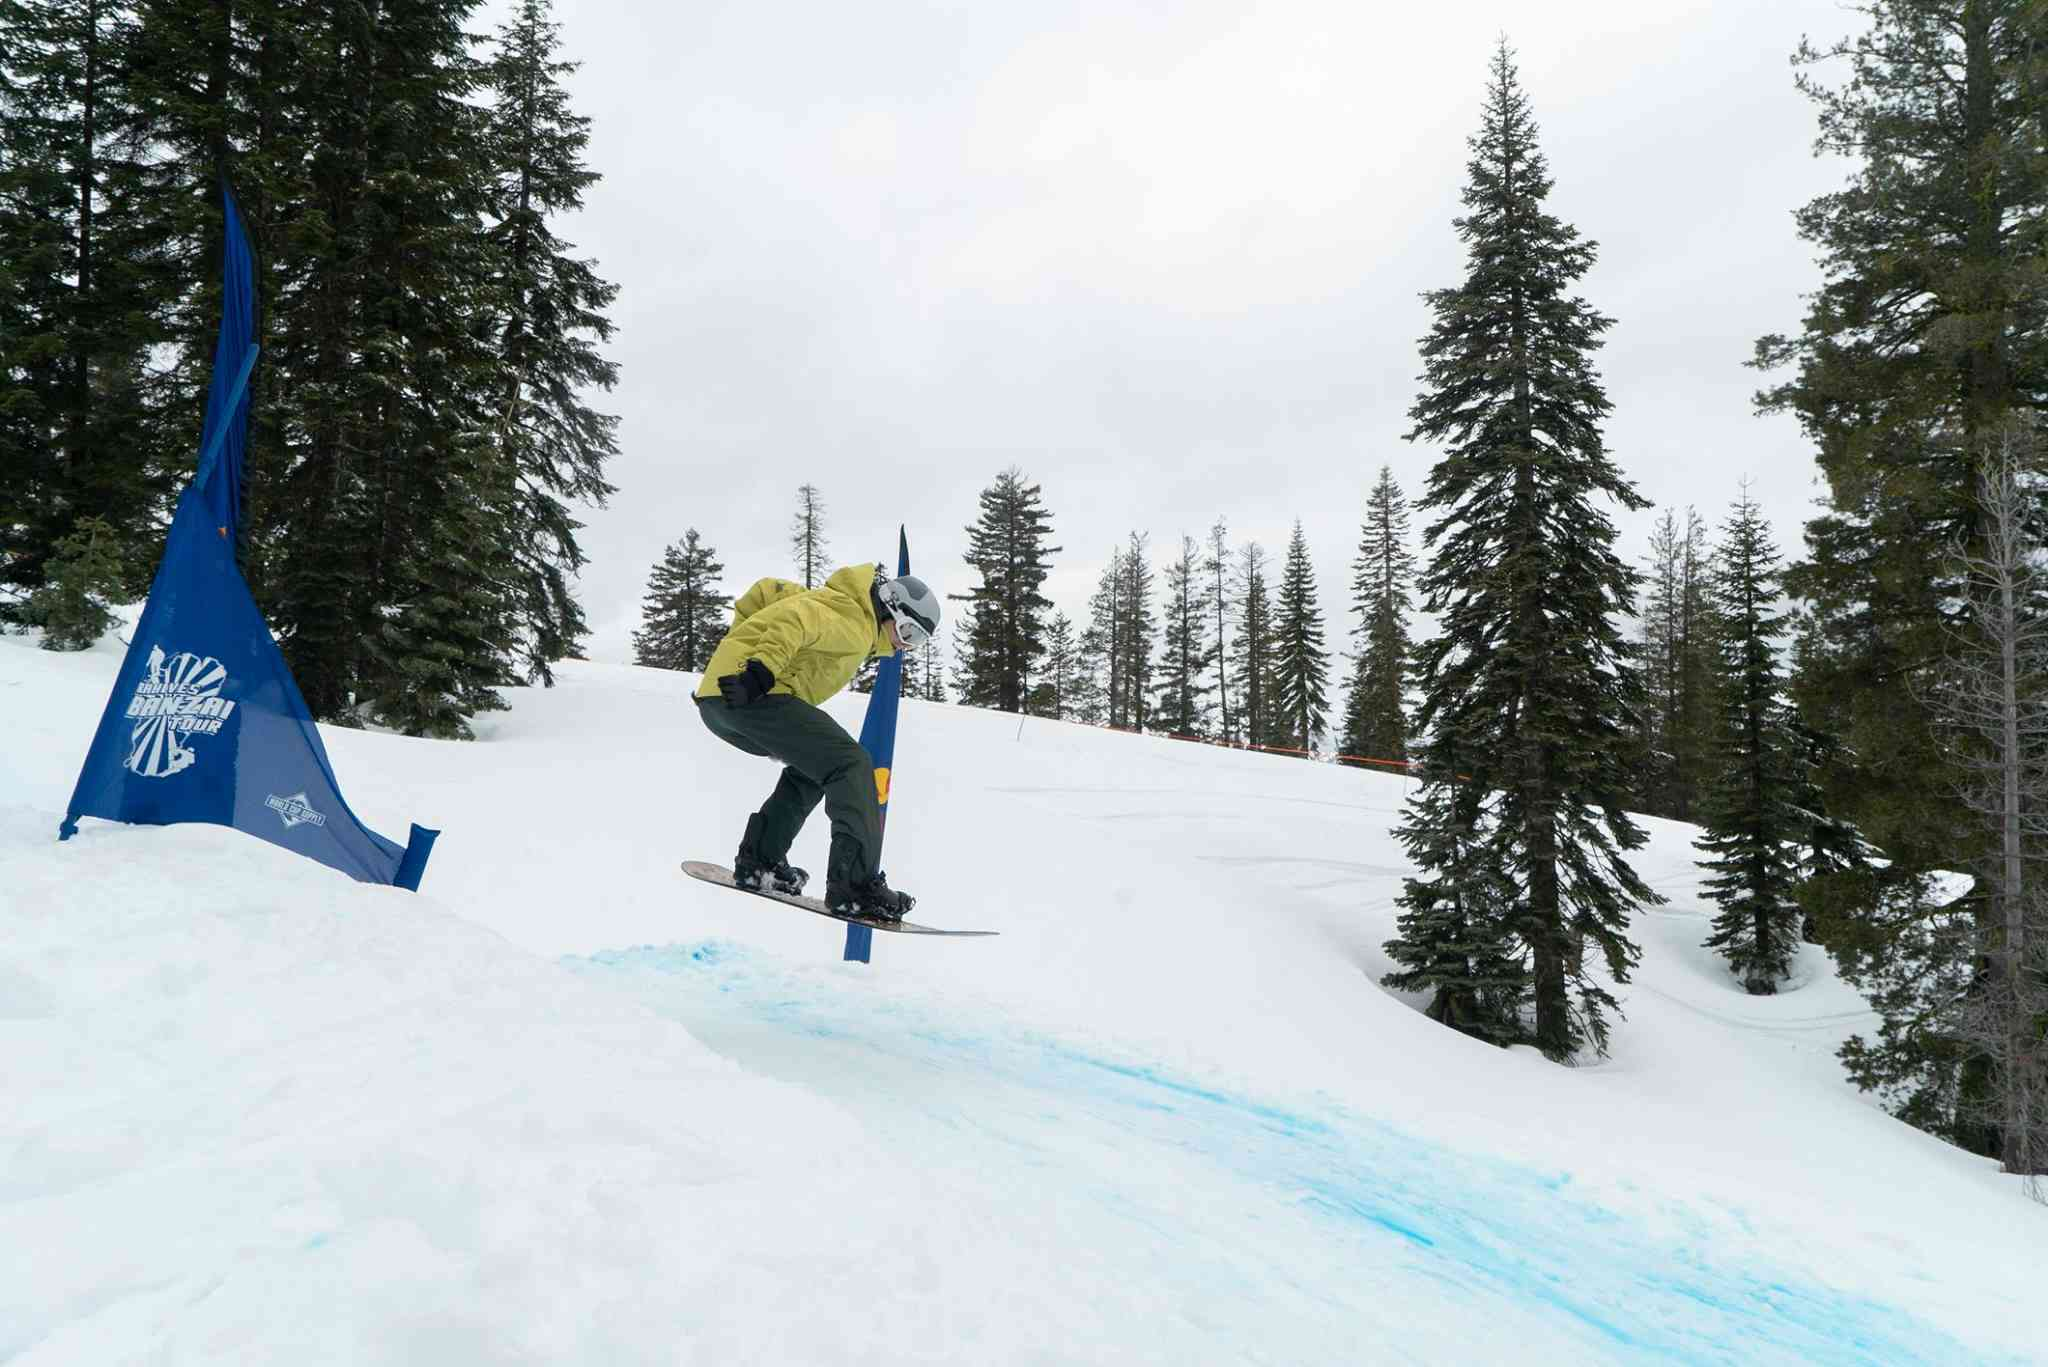 Snowboarder jumping down a slope with two blue flags on either side of them